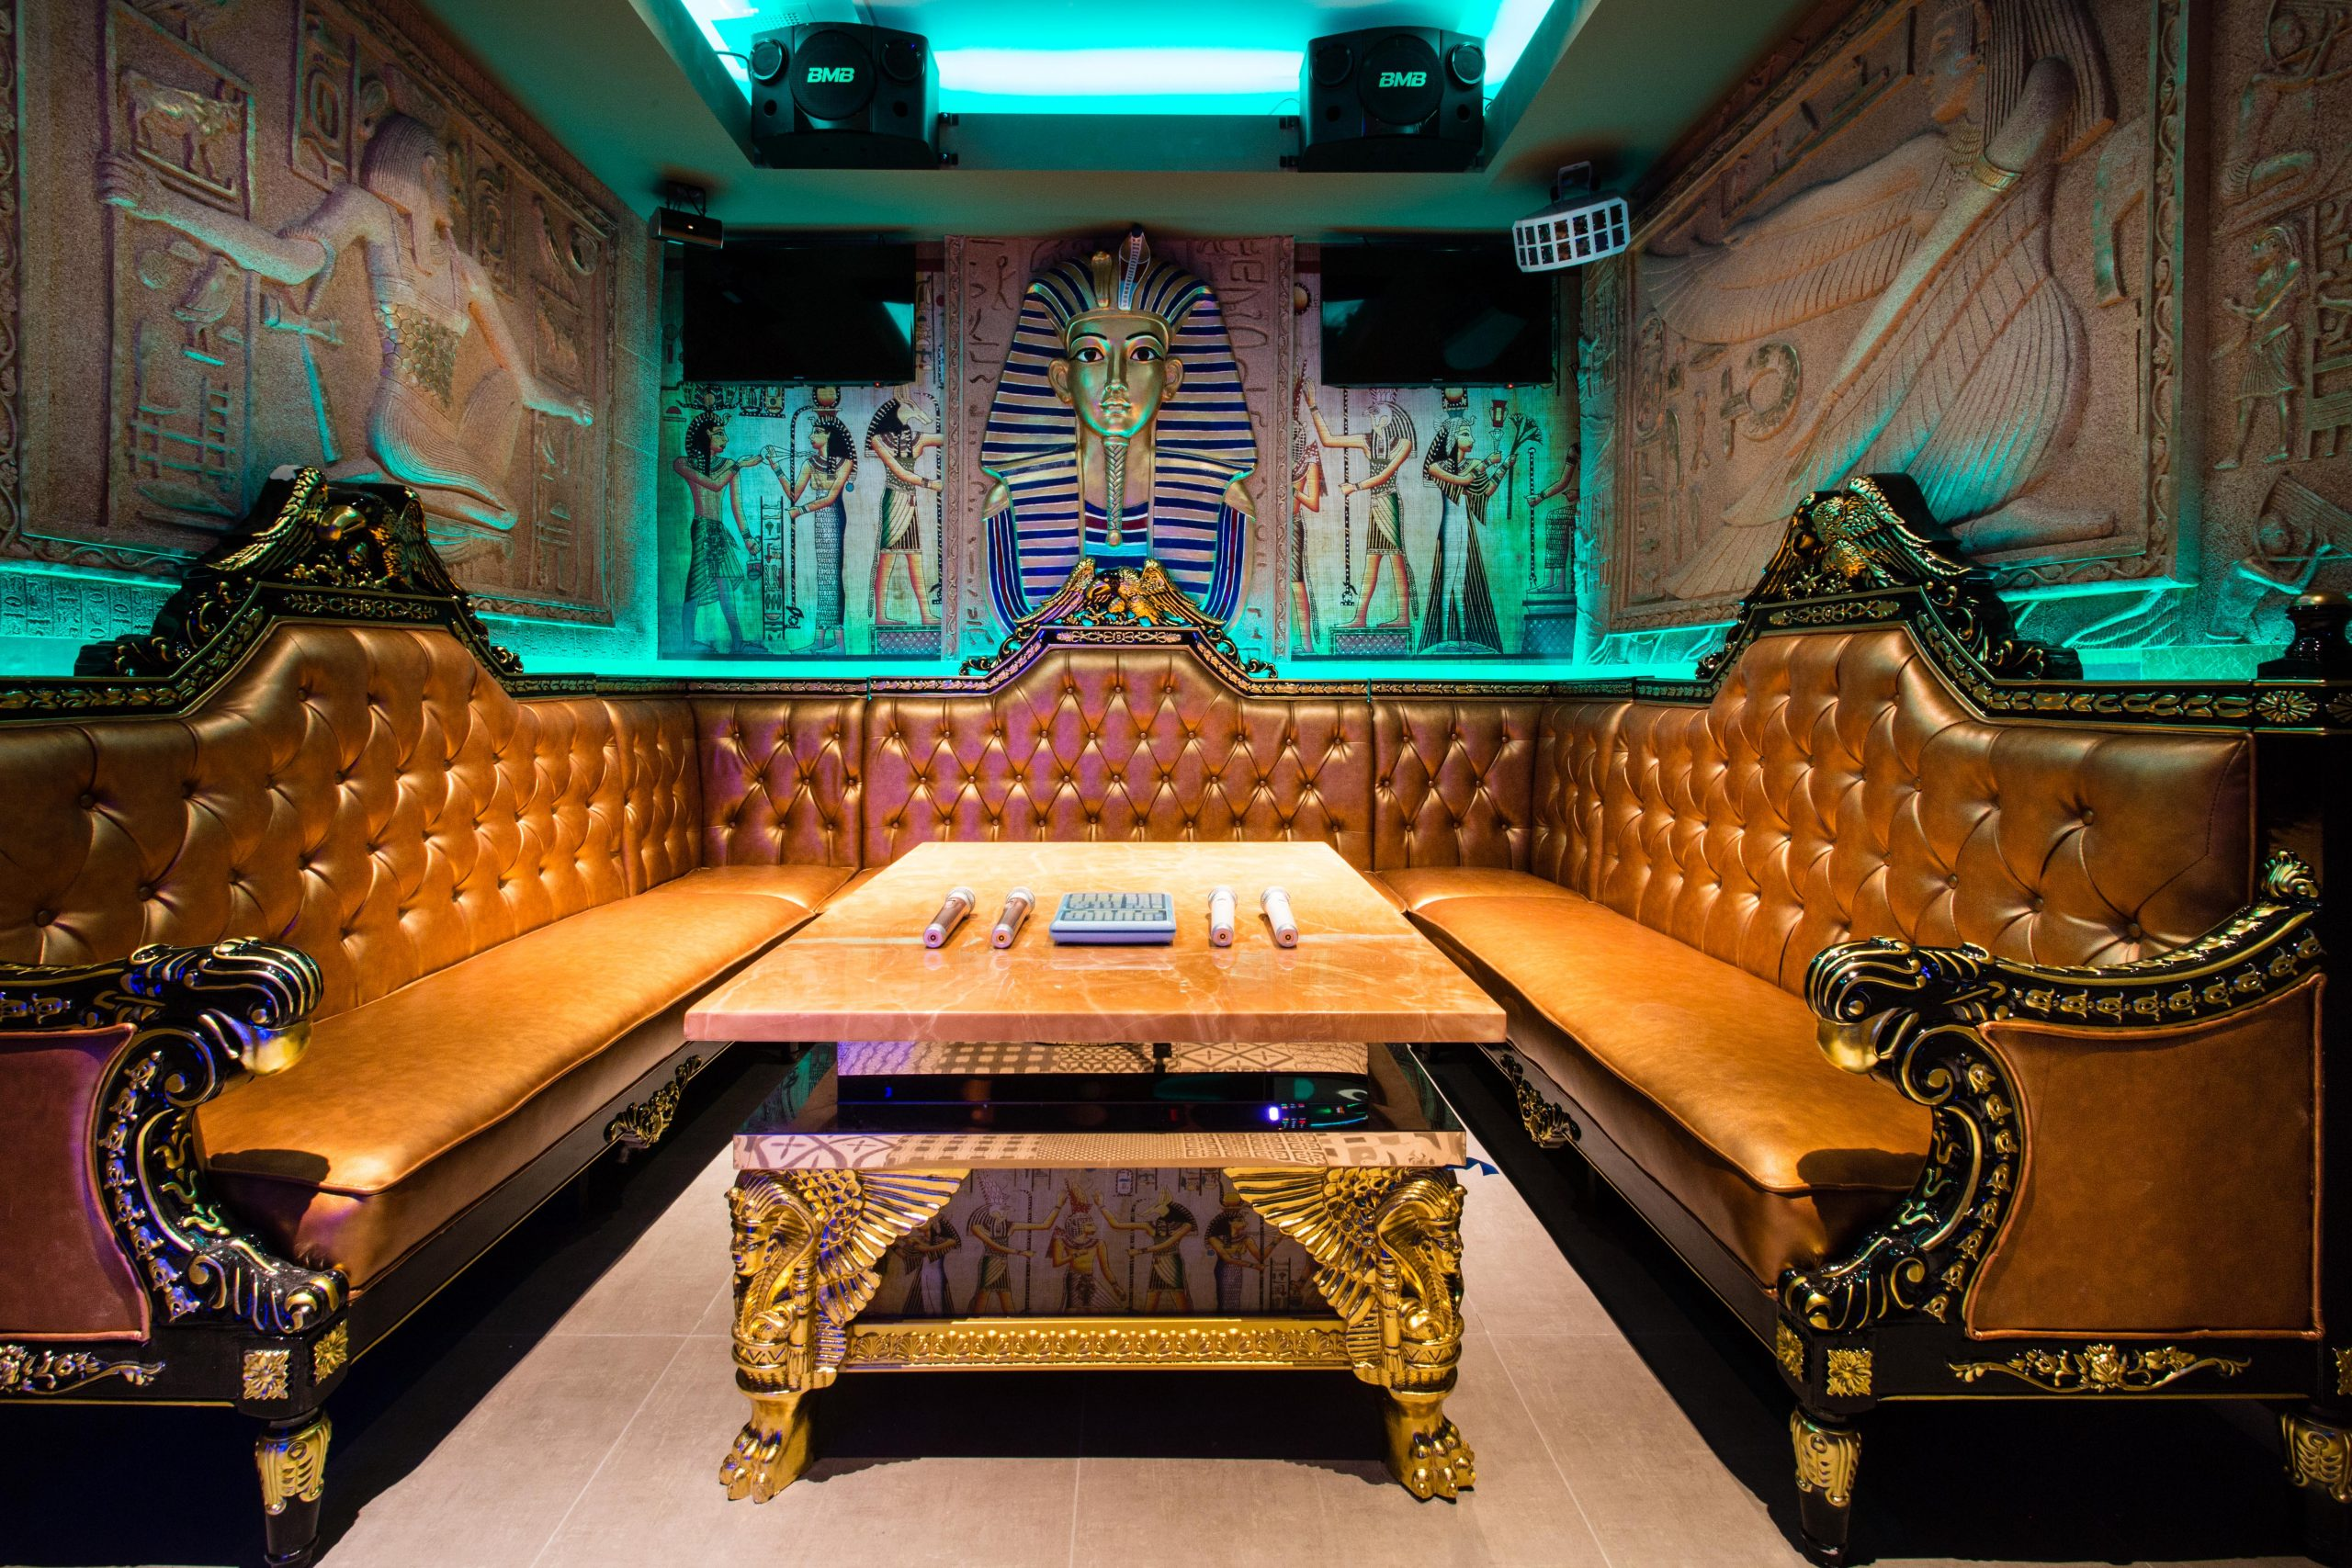 One of the themed rooms in Kamu Ultra Karaoke